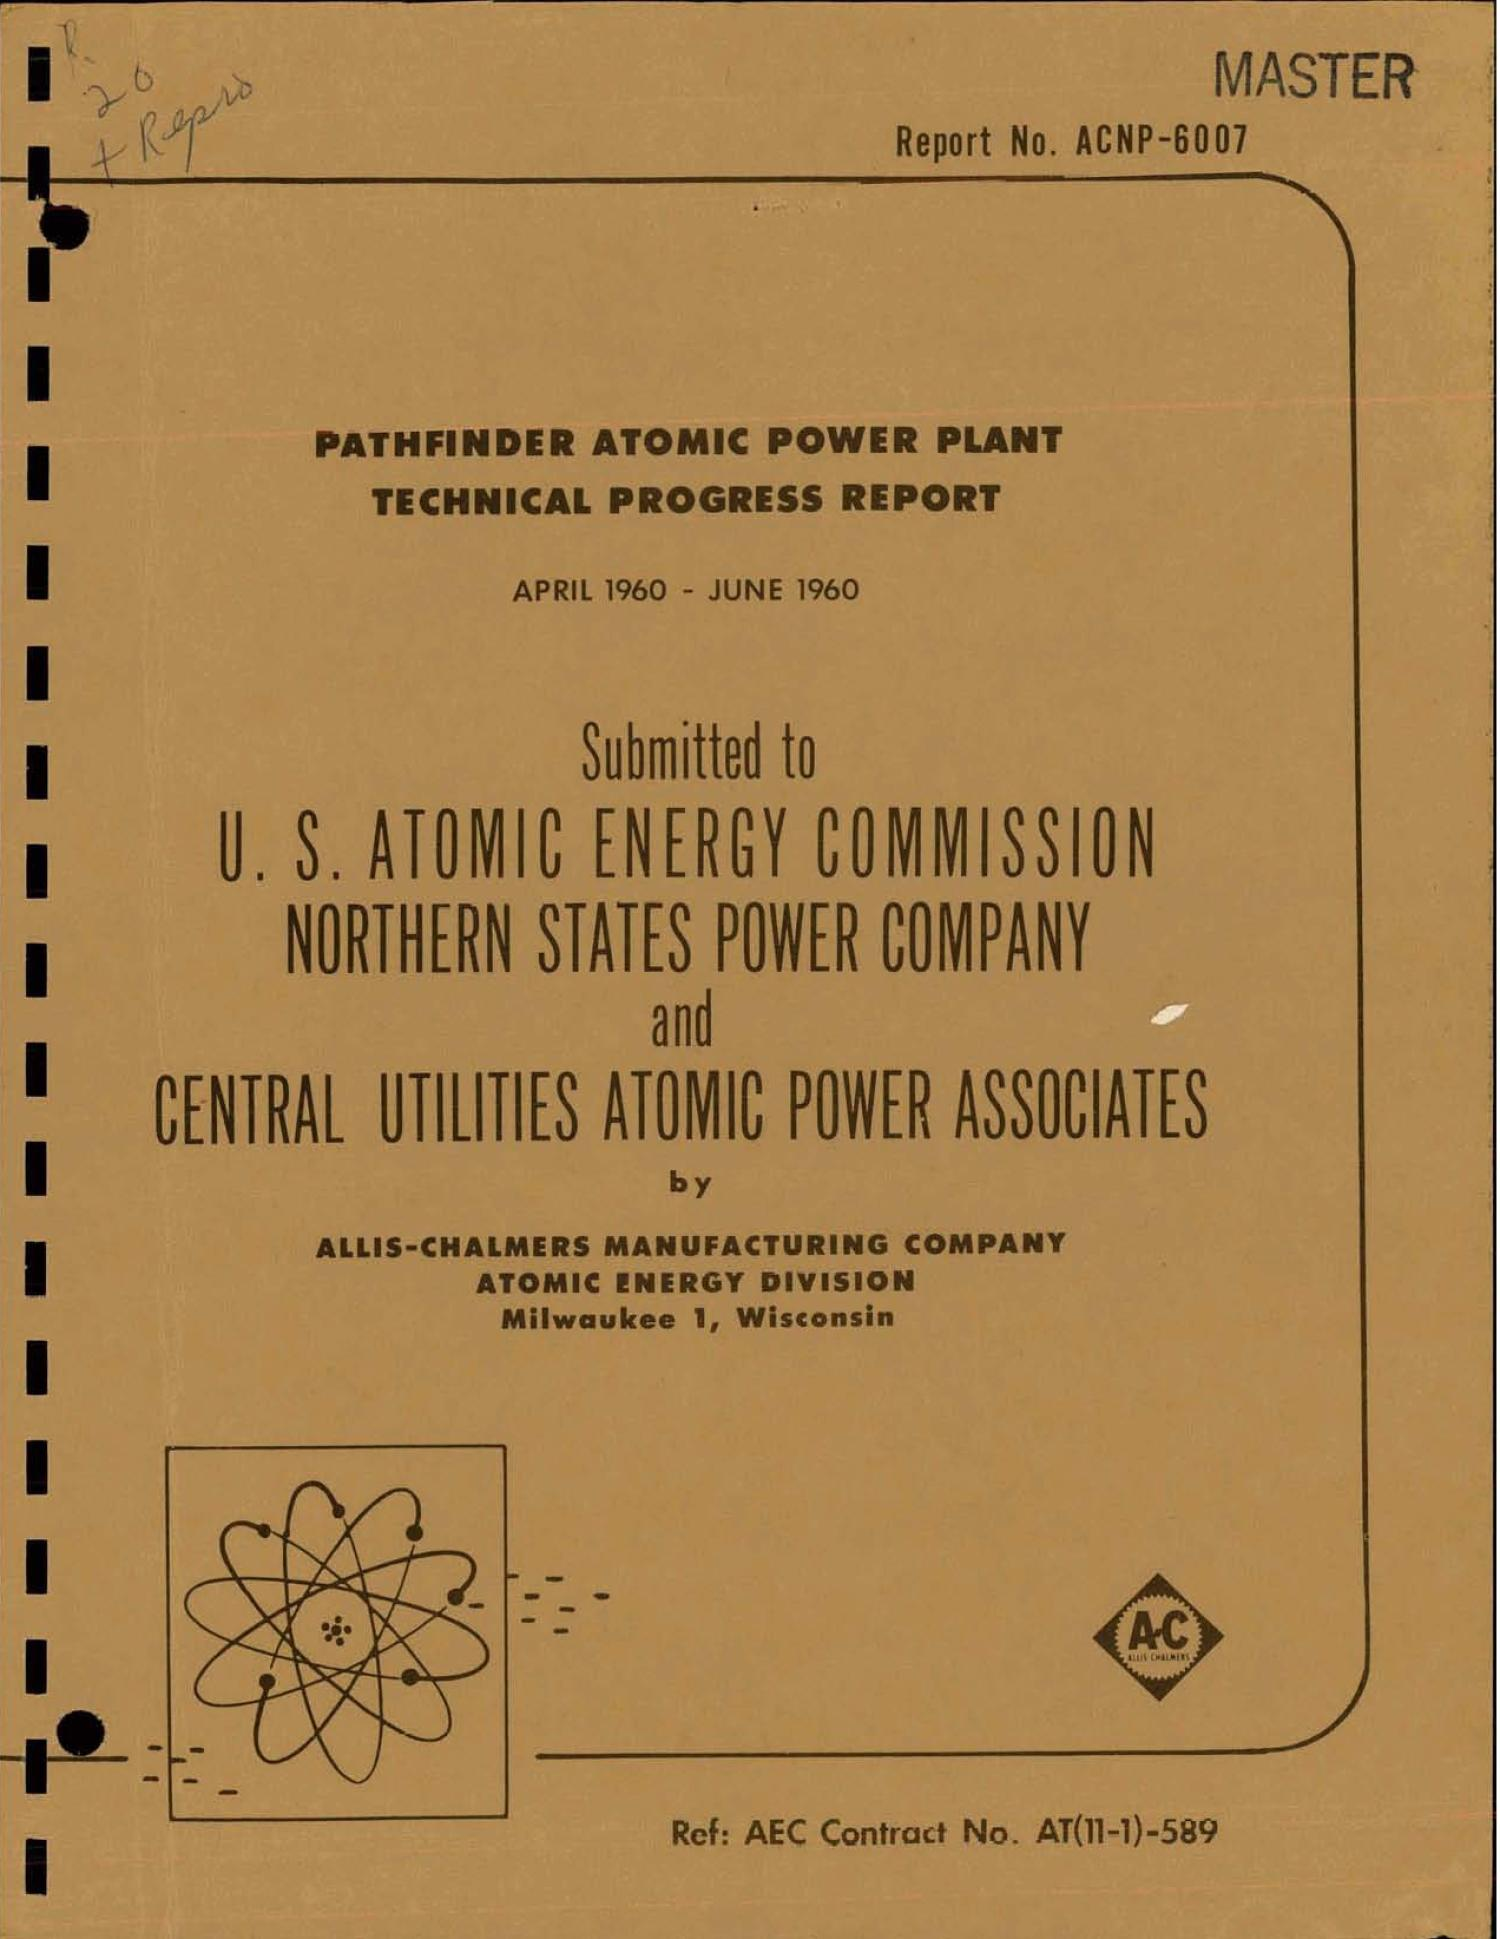 PATHFINDER ATOMIC POWER PLANT TECHNICAL PROGRESS REPORT, APRIL 1960-JUNE 1960                                                                                                      [Sequence #]: 1 of 201